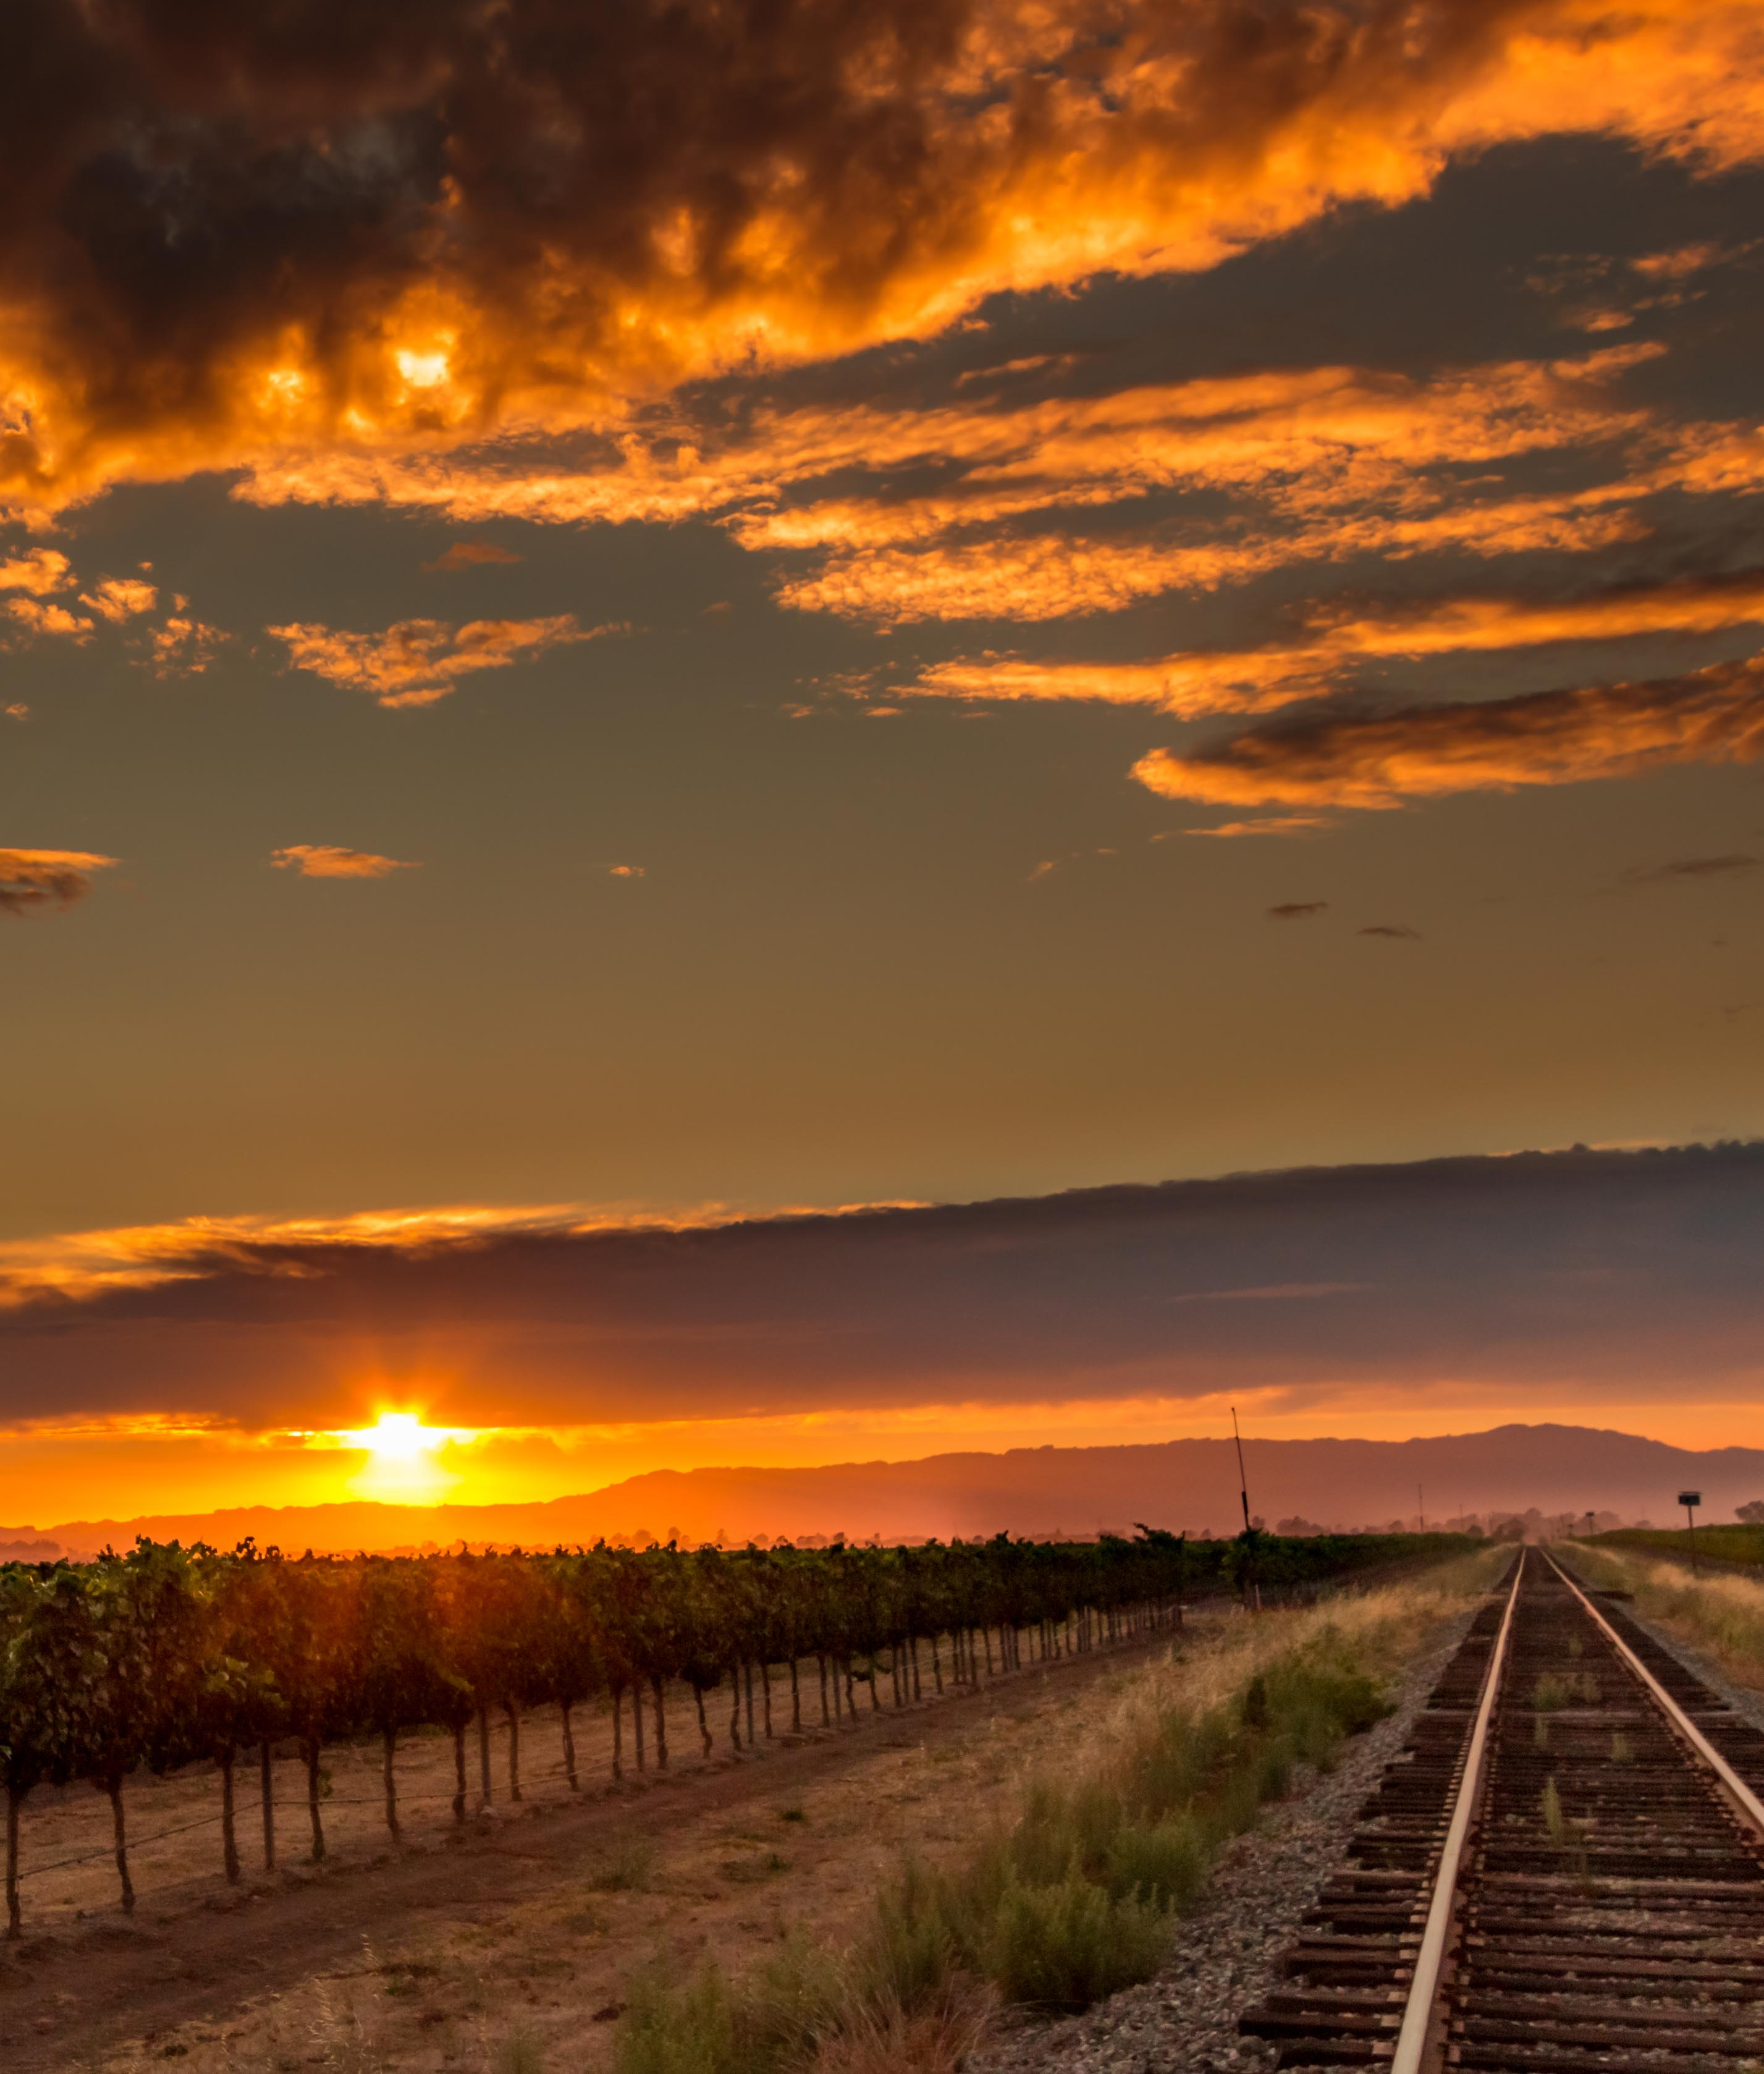 A vibrant sunset over vineyard and train tracks in the Los Carneros wine region of Napa Valley